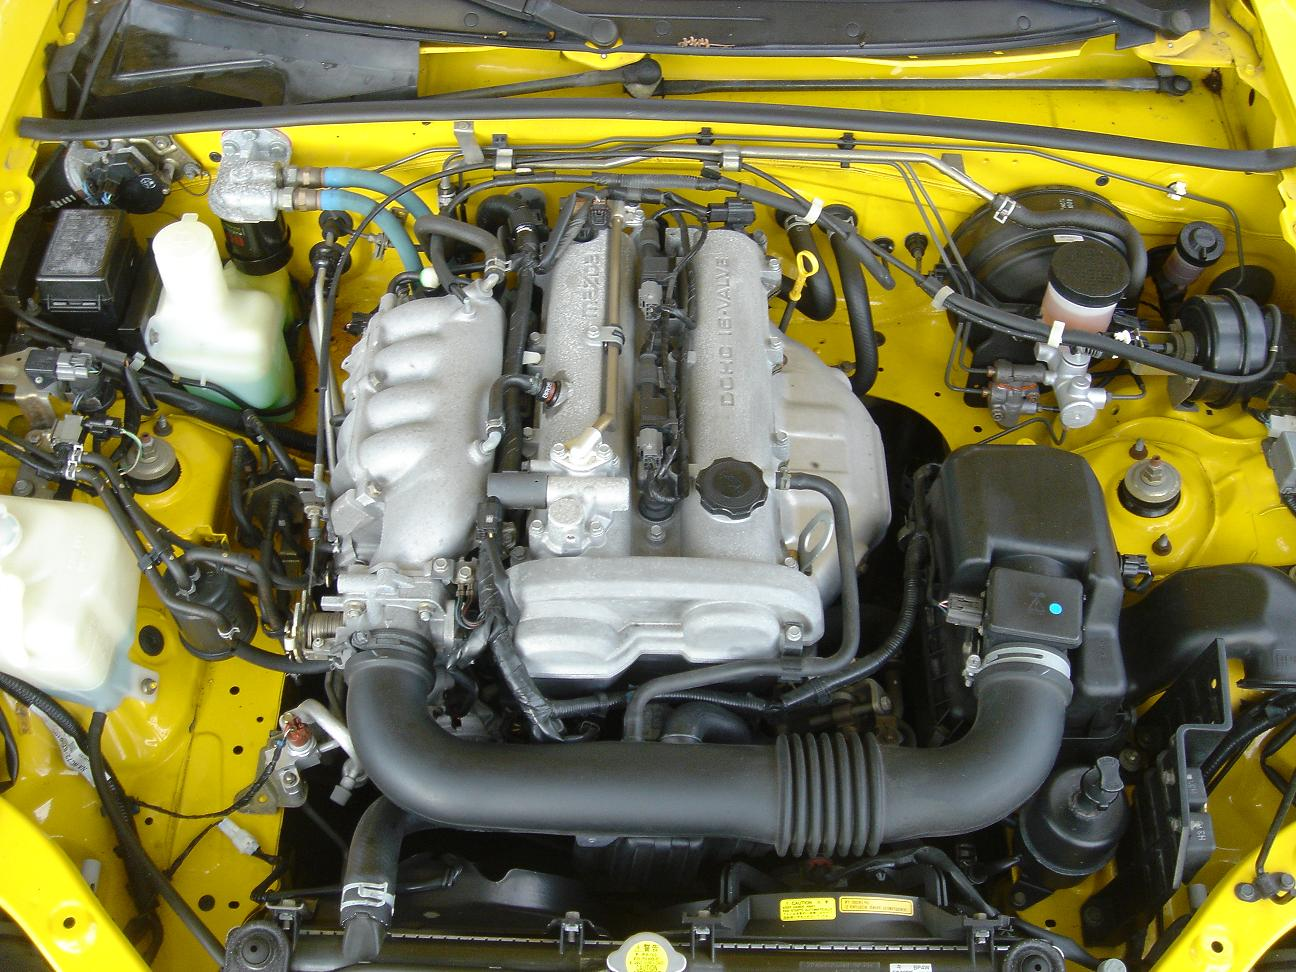 2016 Mazda Mx-5 Miata Engine Bay  Less Upgrade Potential  - Youwheel Com